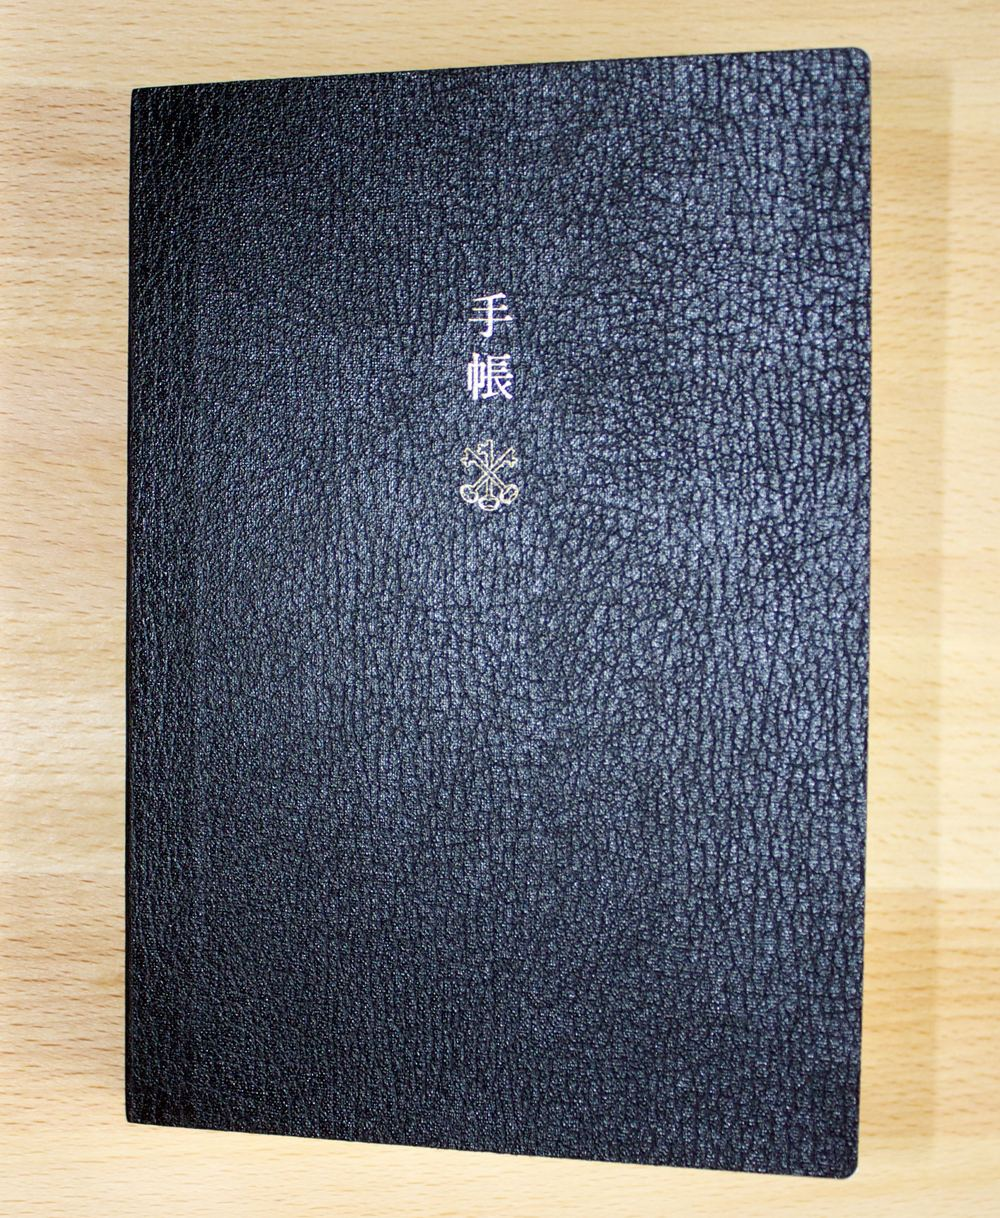 The front cover of the Techo